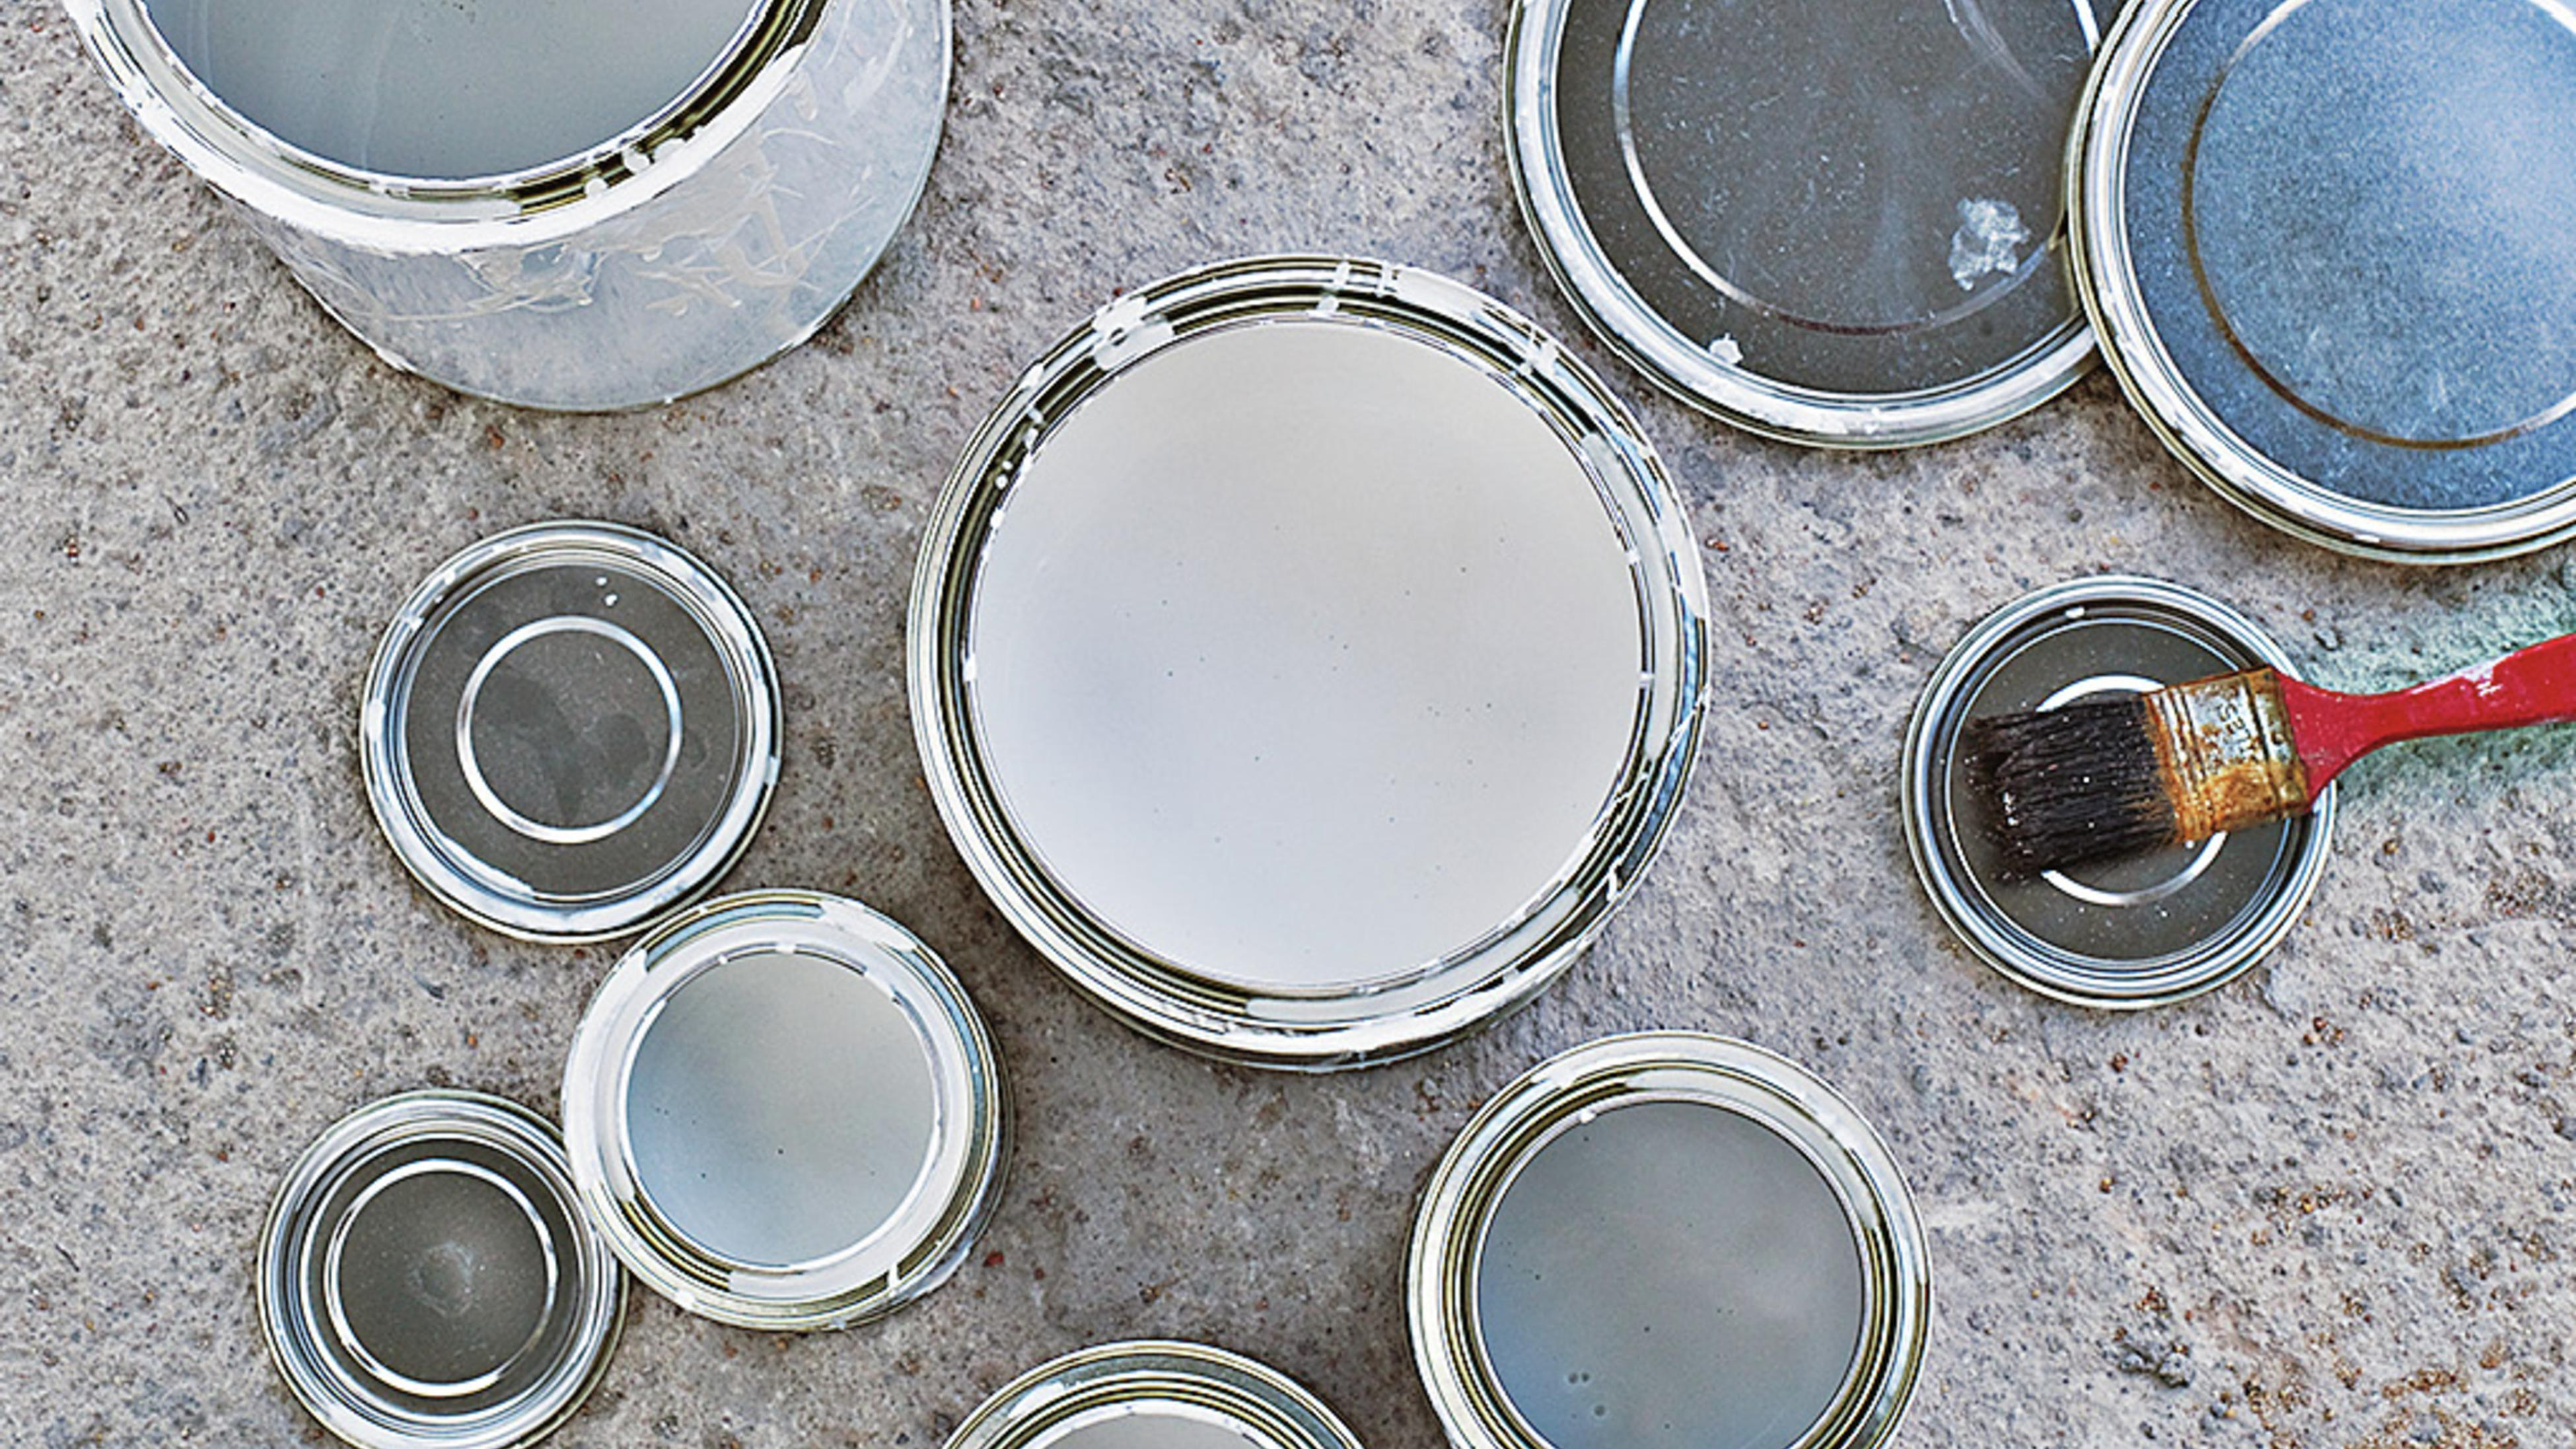 Empty paint tins and lids on the ground.